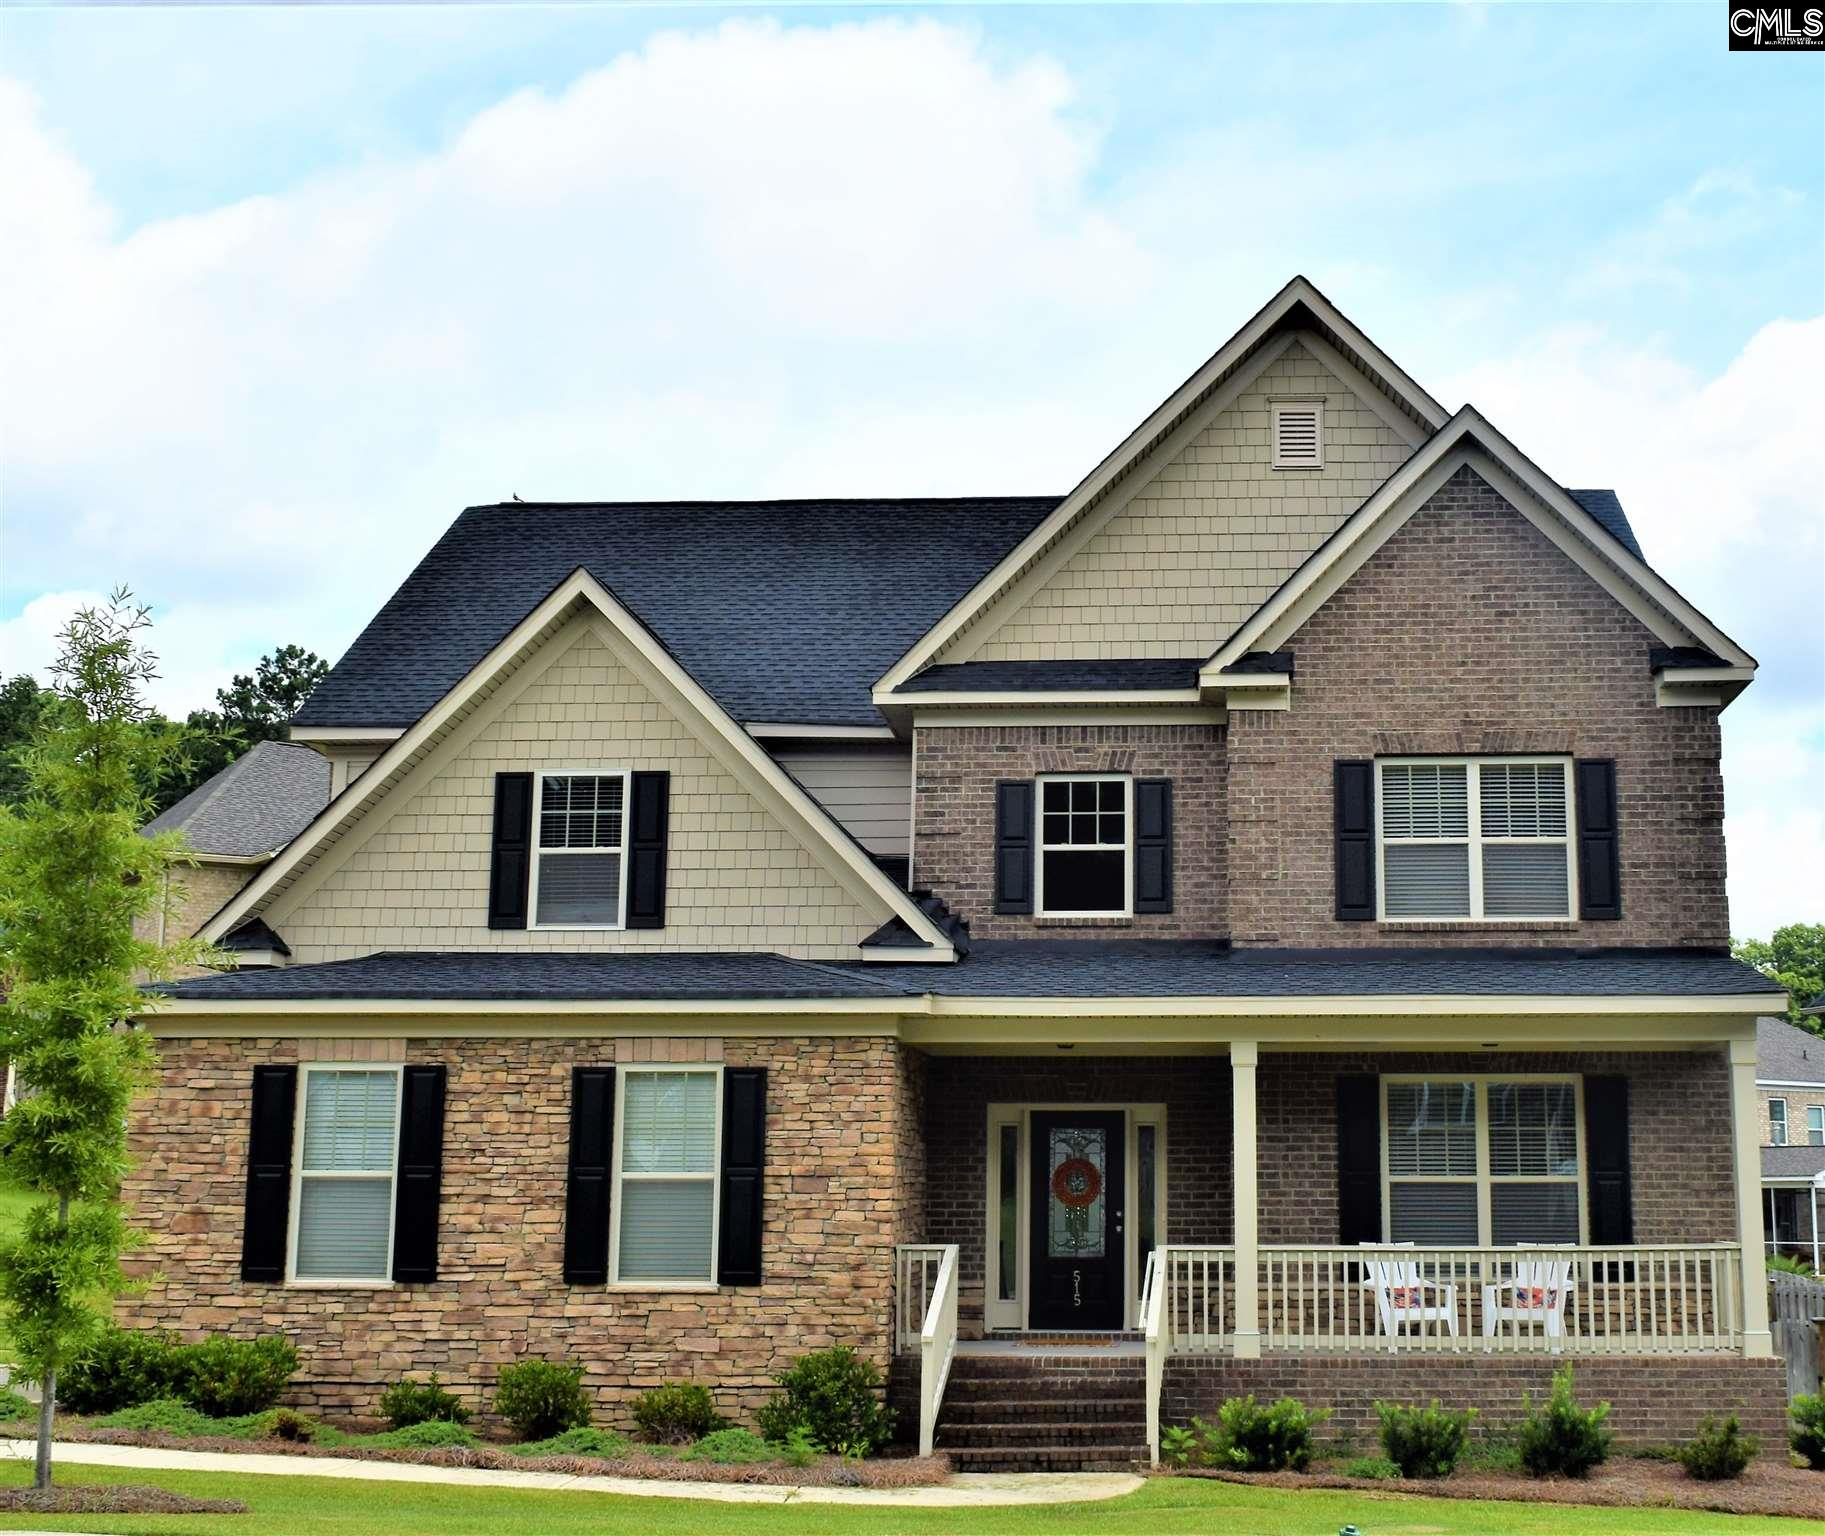 515 Crooked Pine Lexington, SC 29073-6403